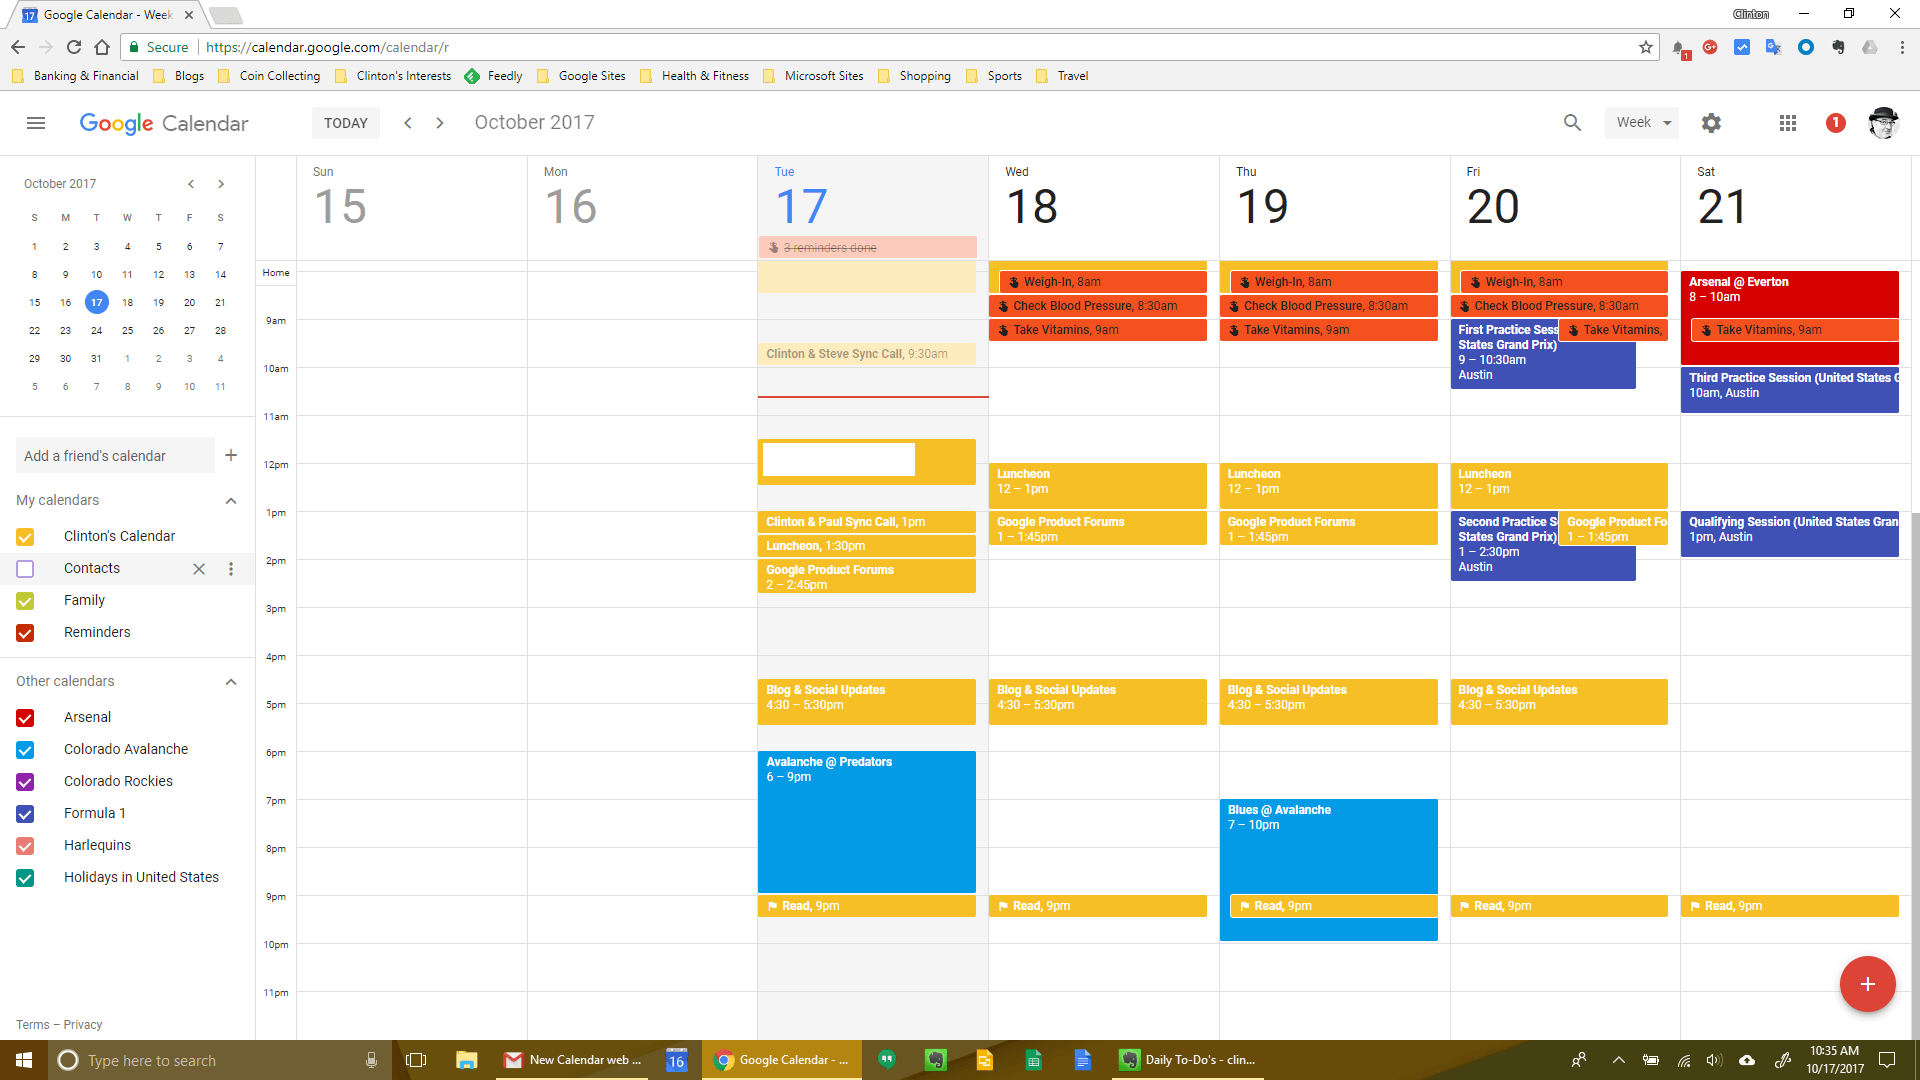 Classic Google Calendar Interop Tool Shuttering in February 2018